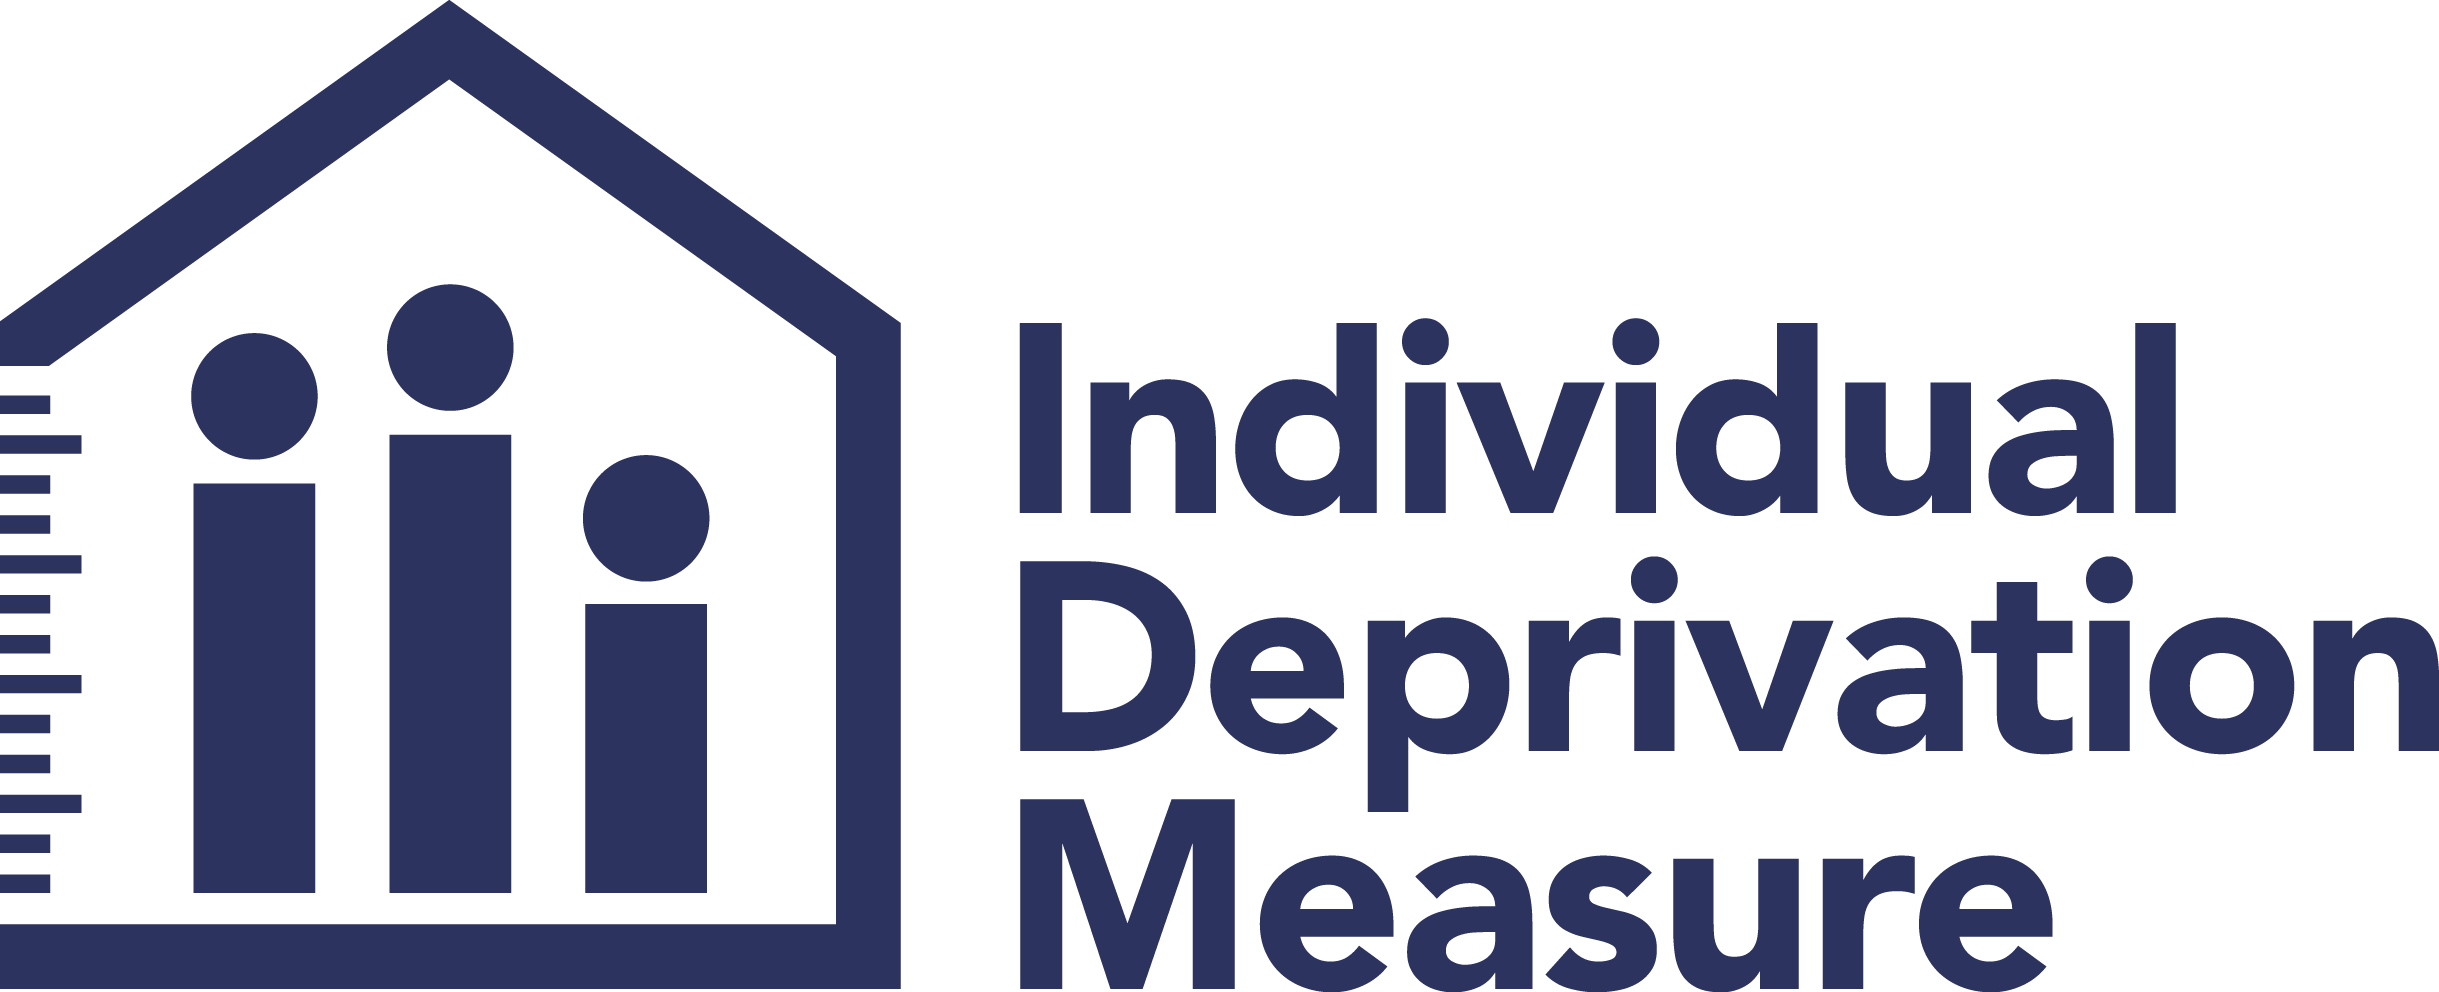 Image of the Individual Deprivation Measure logo